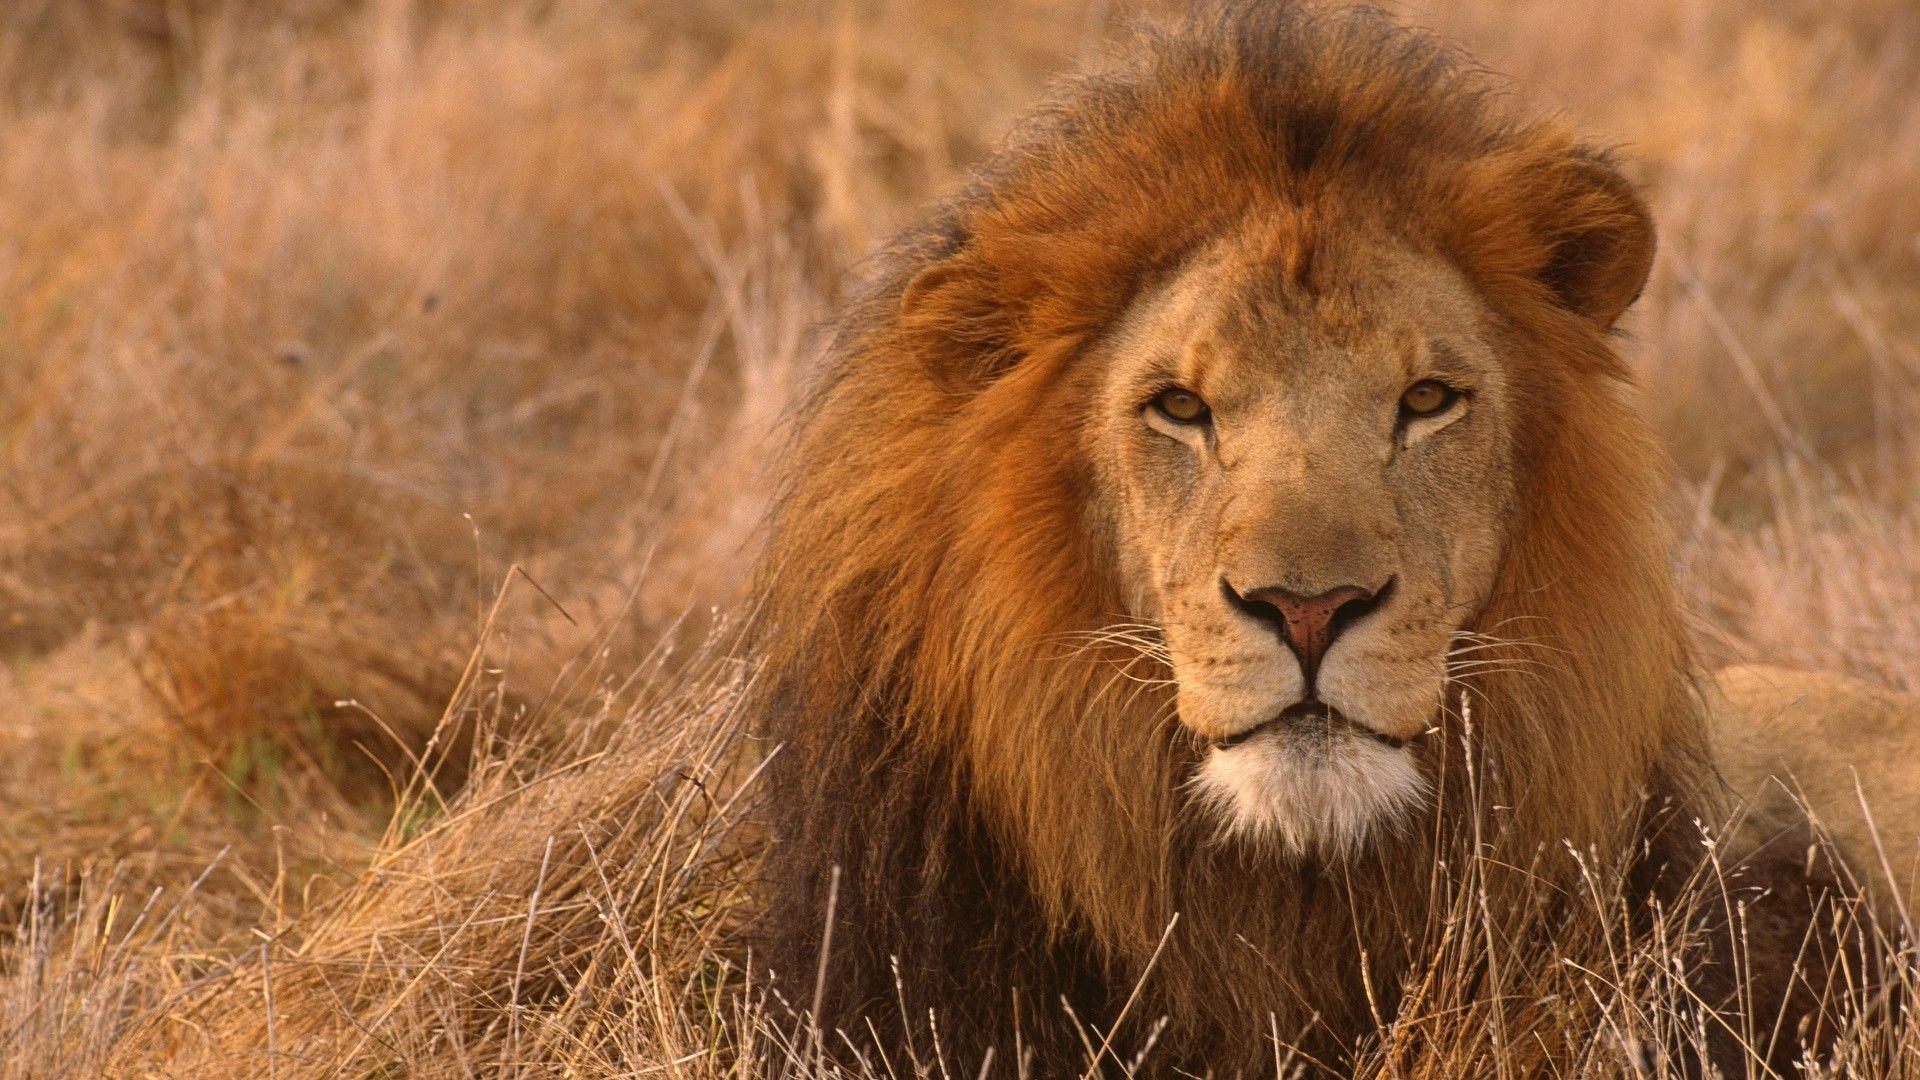 lion hd wallpapers 1024x768 - photo #13